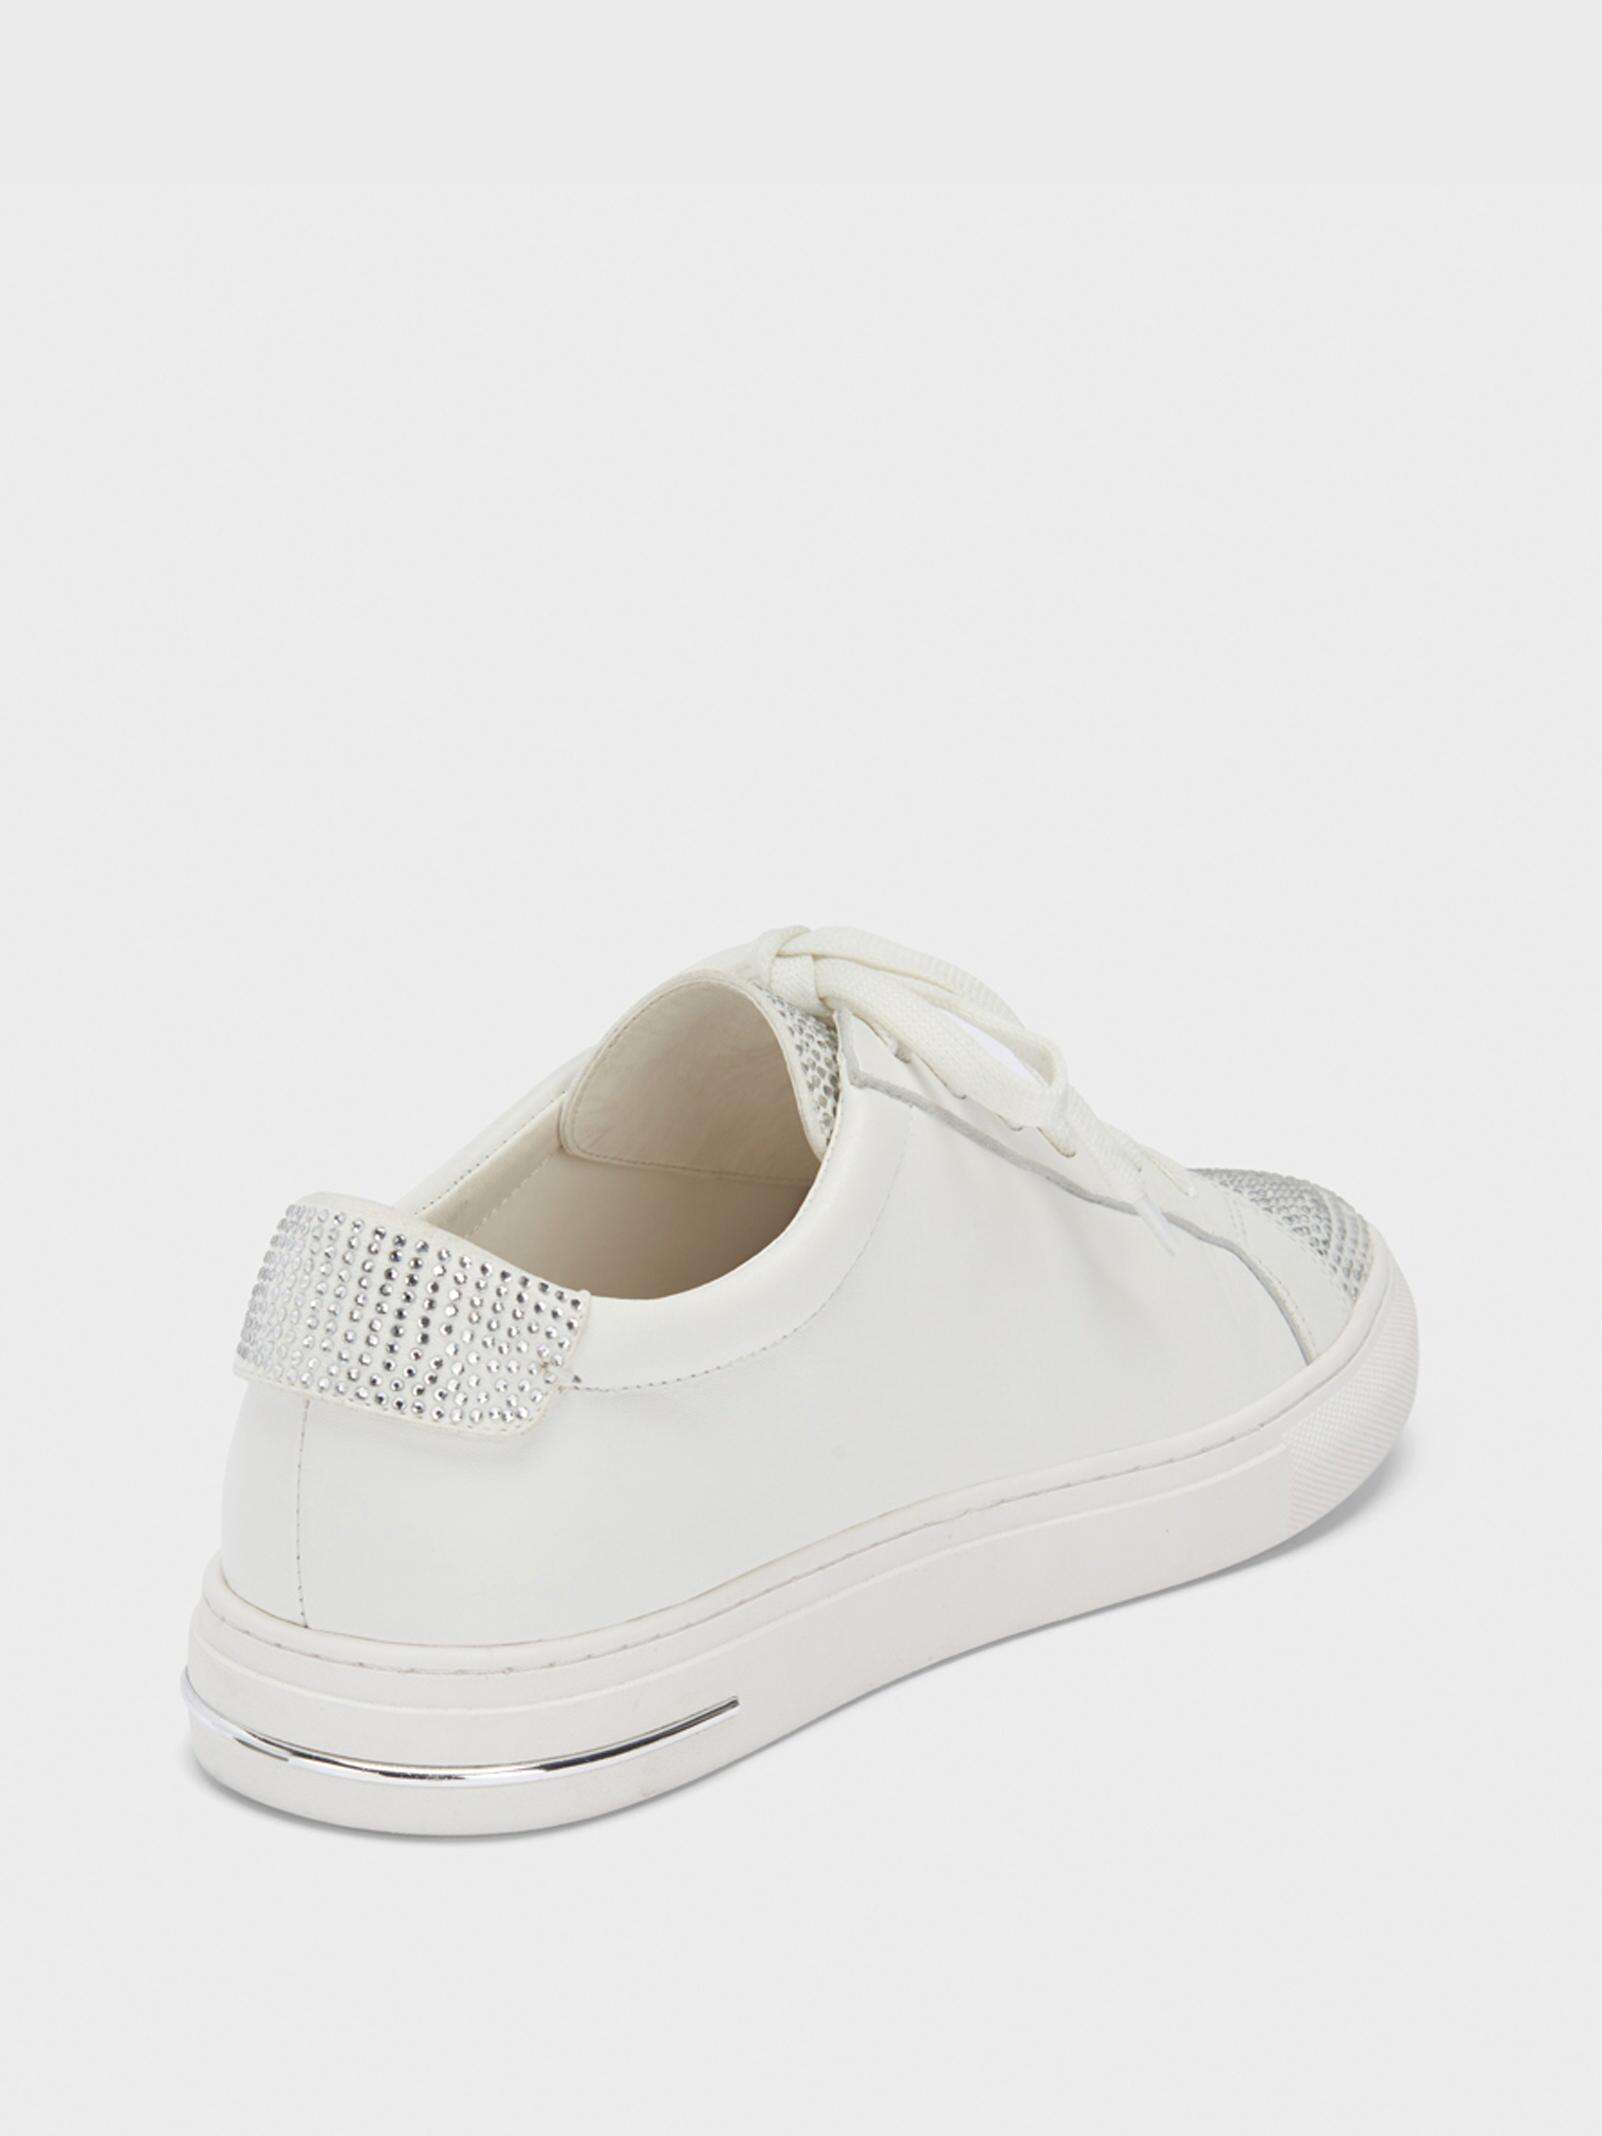 big sale best prices new arrive DKNY Court Sneaker in White - Lyst